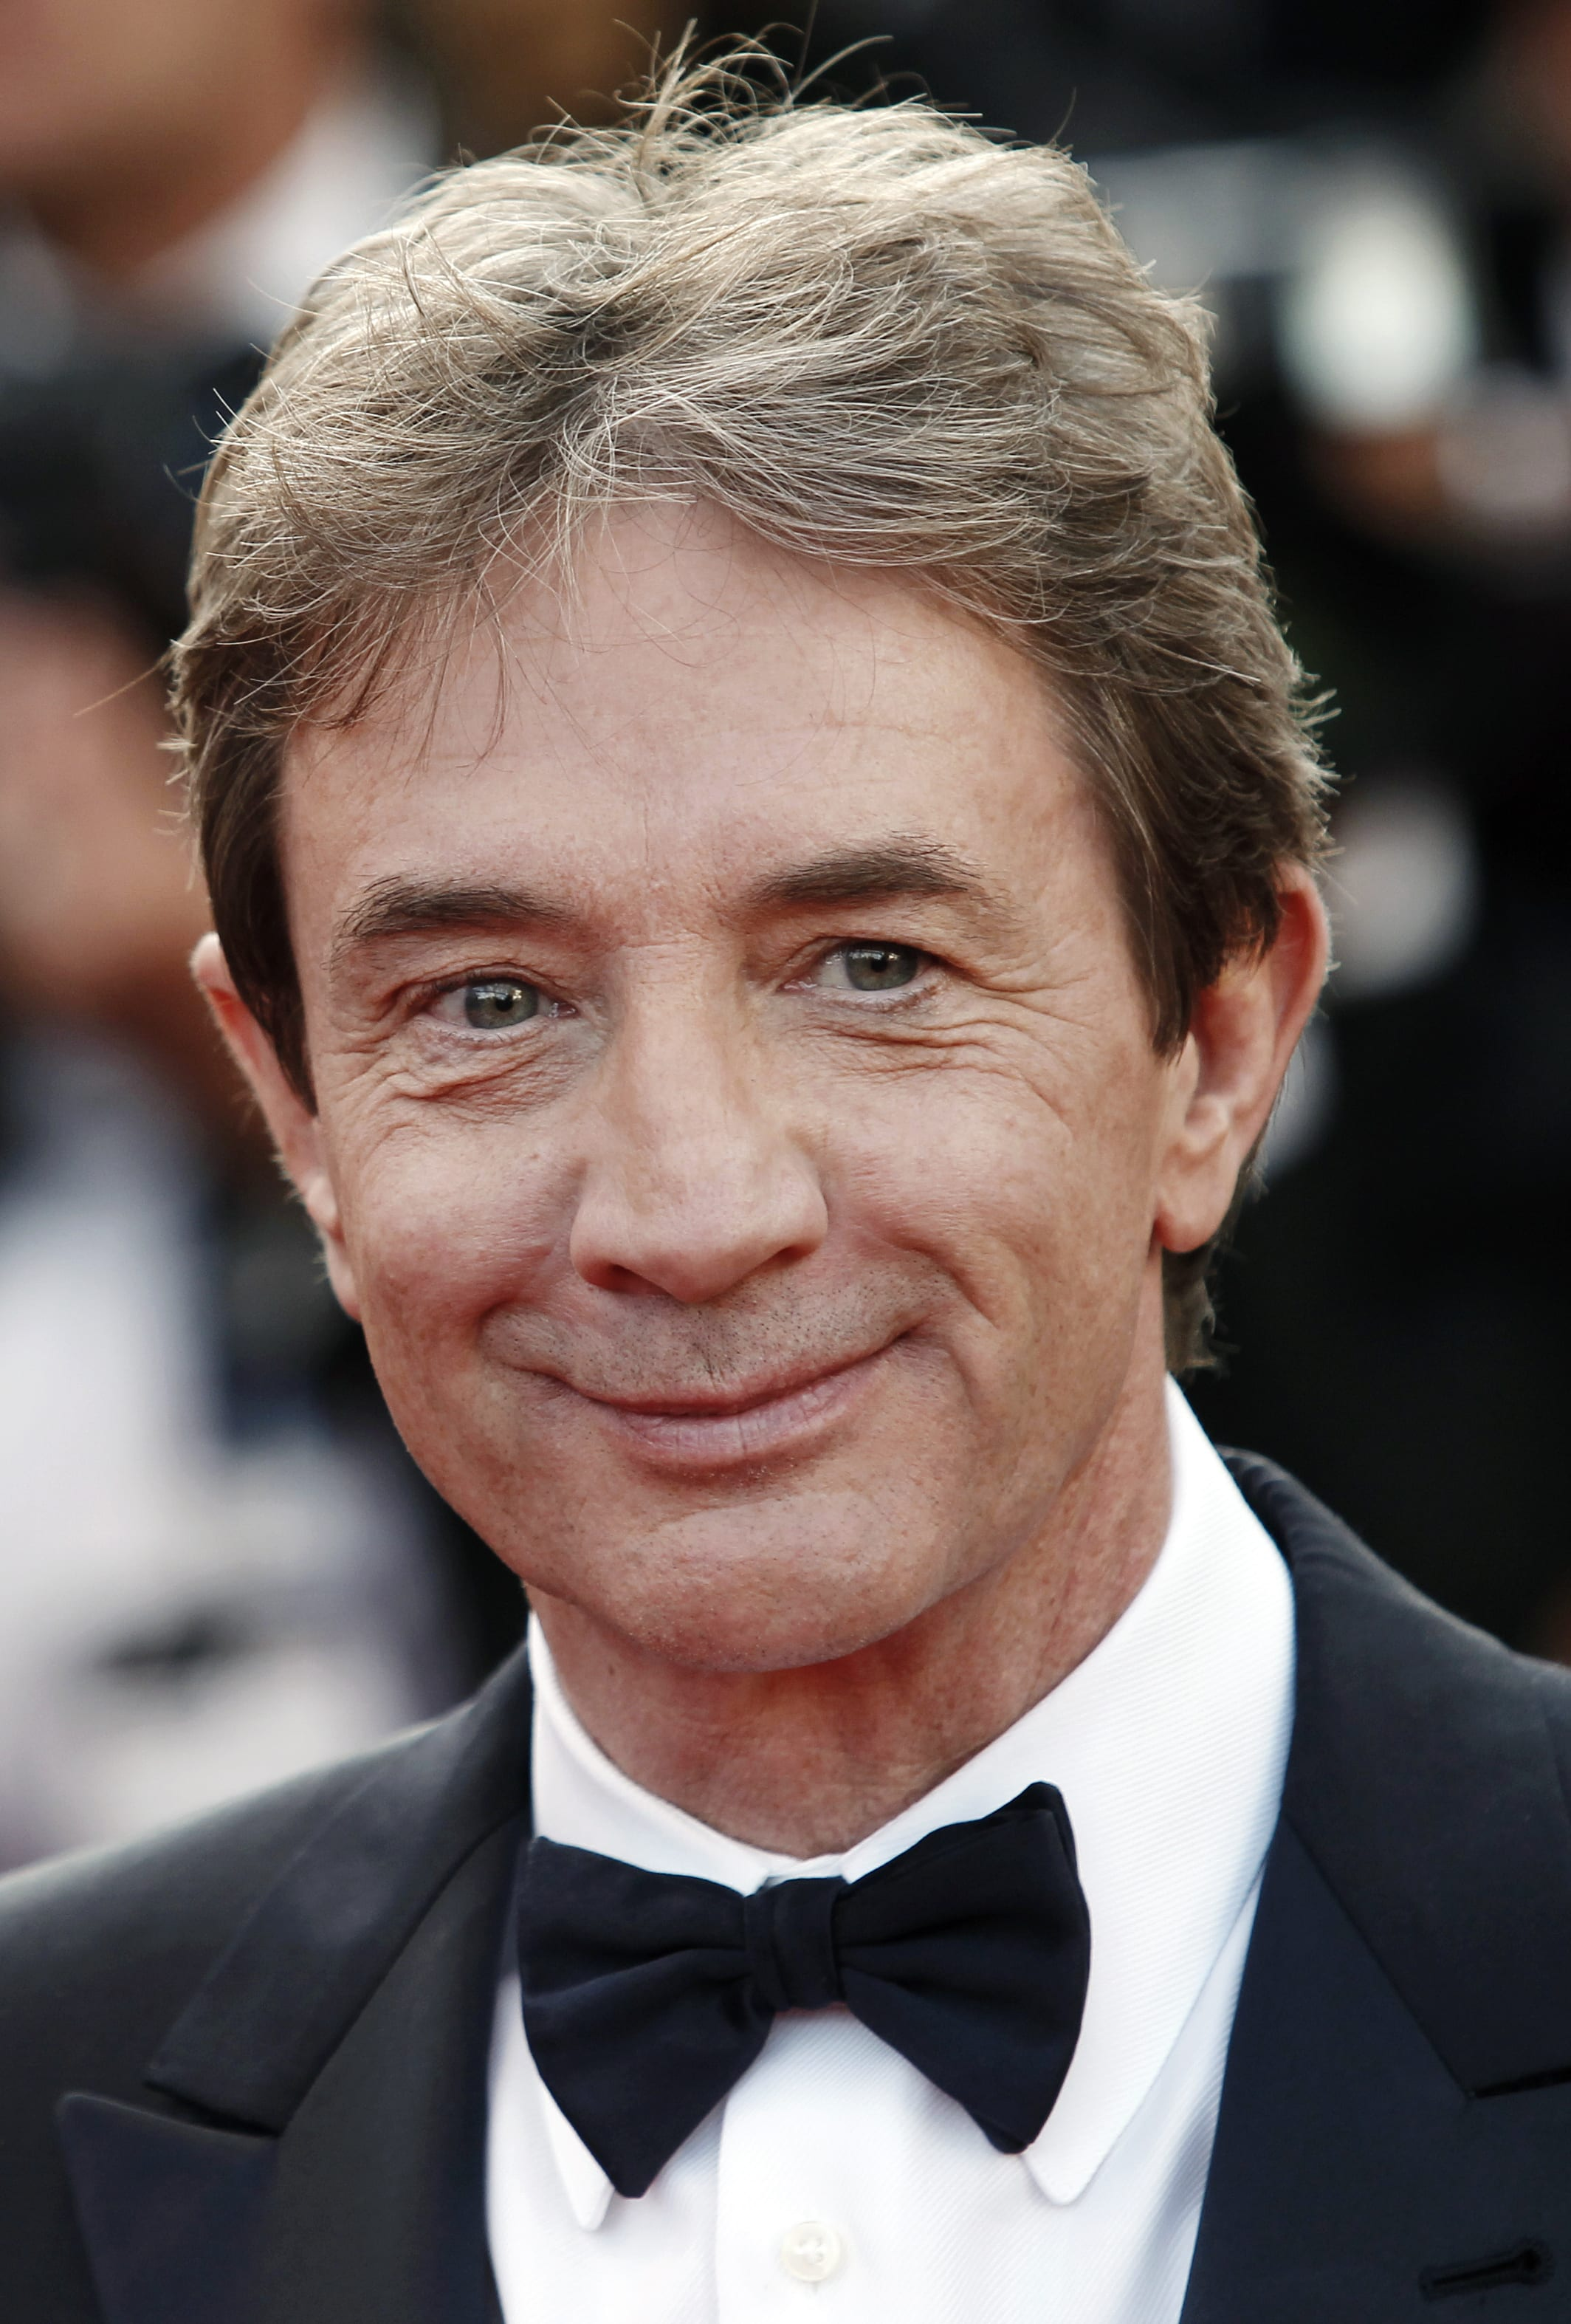 Martin Short's Layered Short Crop